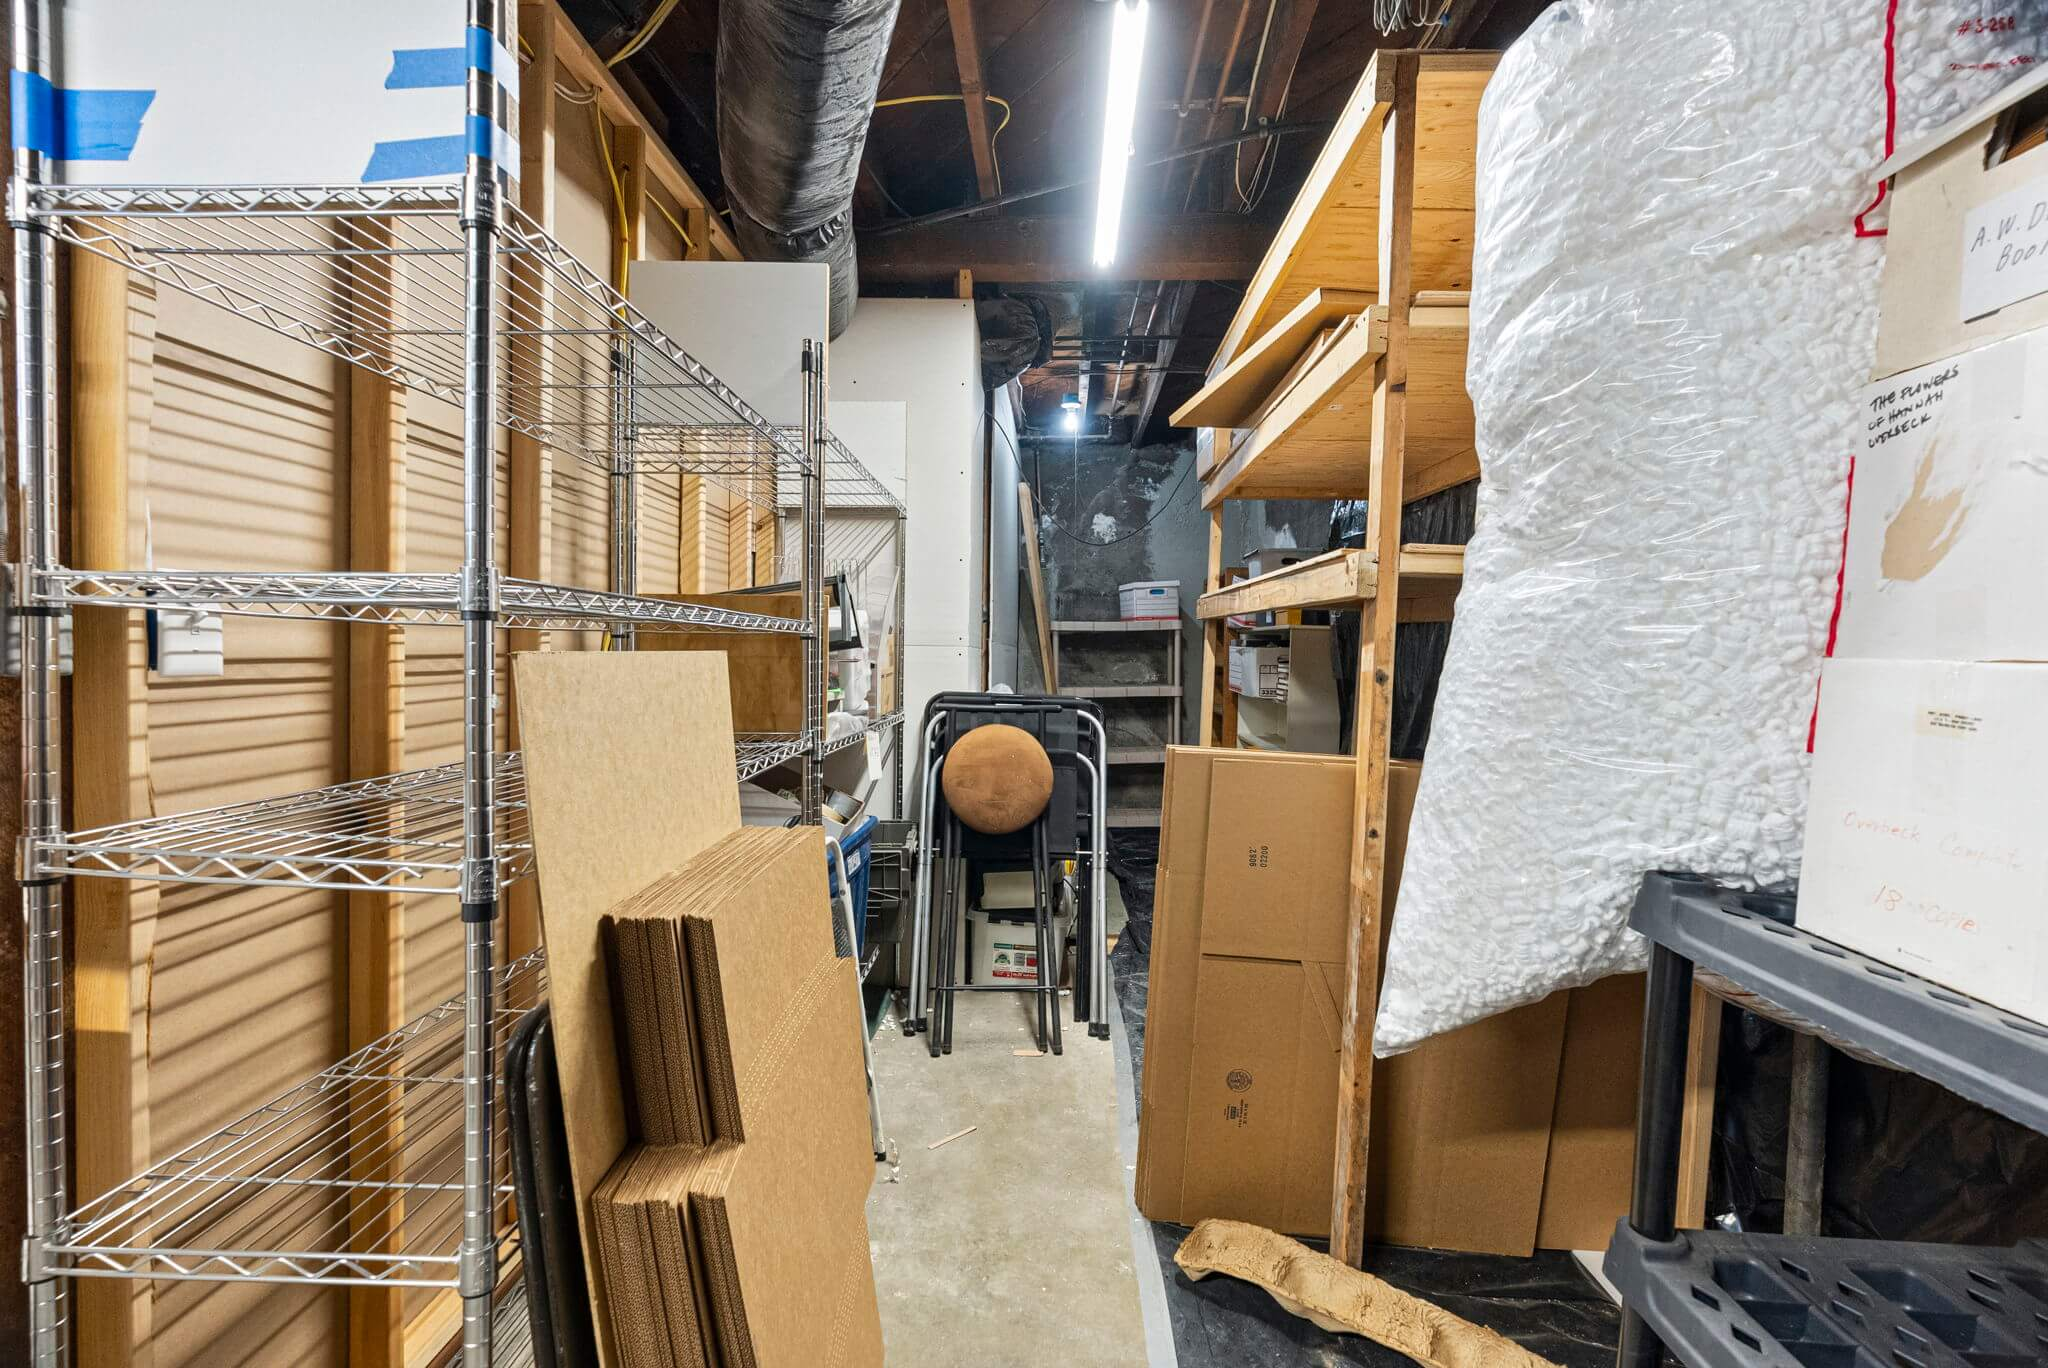 Additional storage in the basement